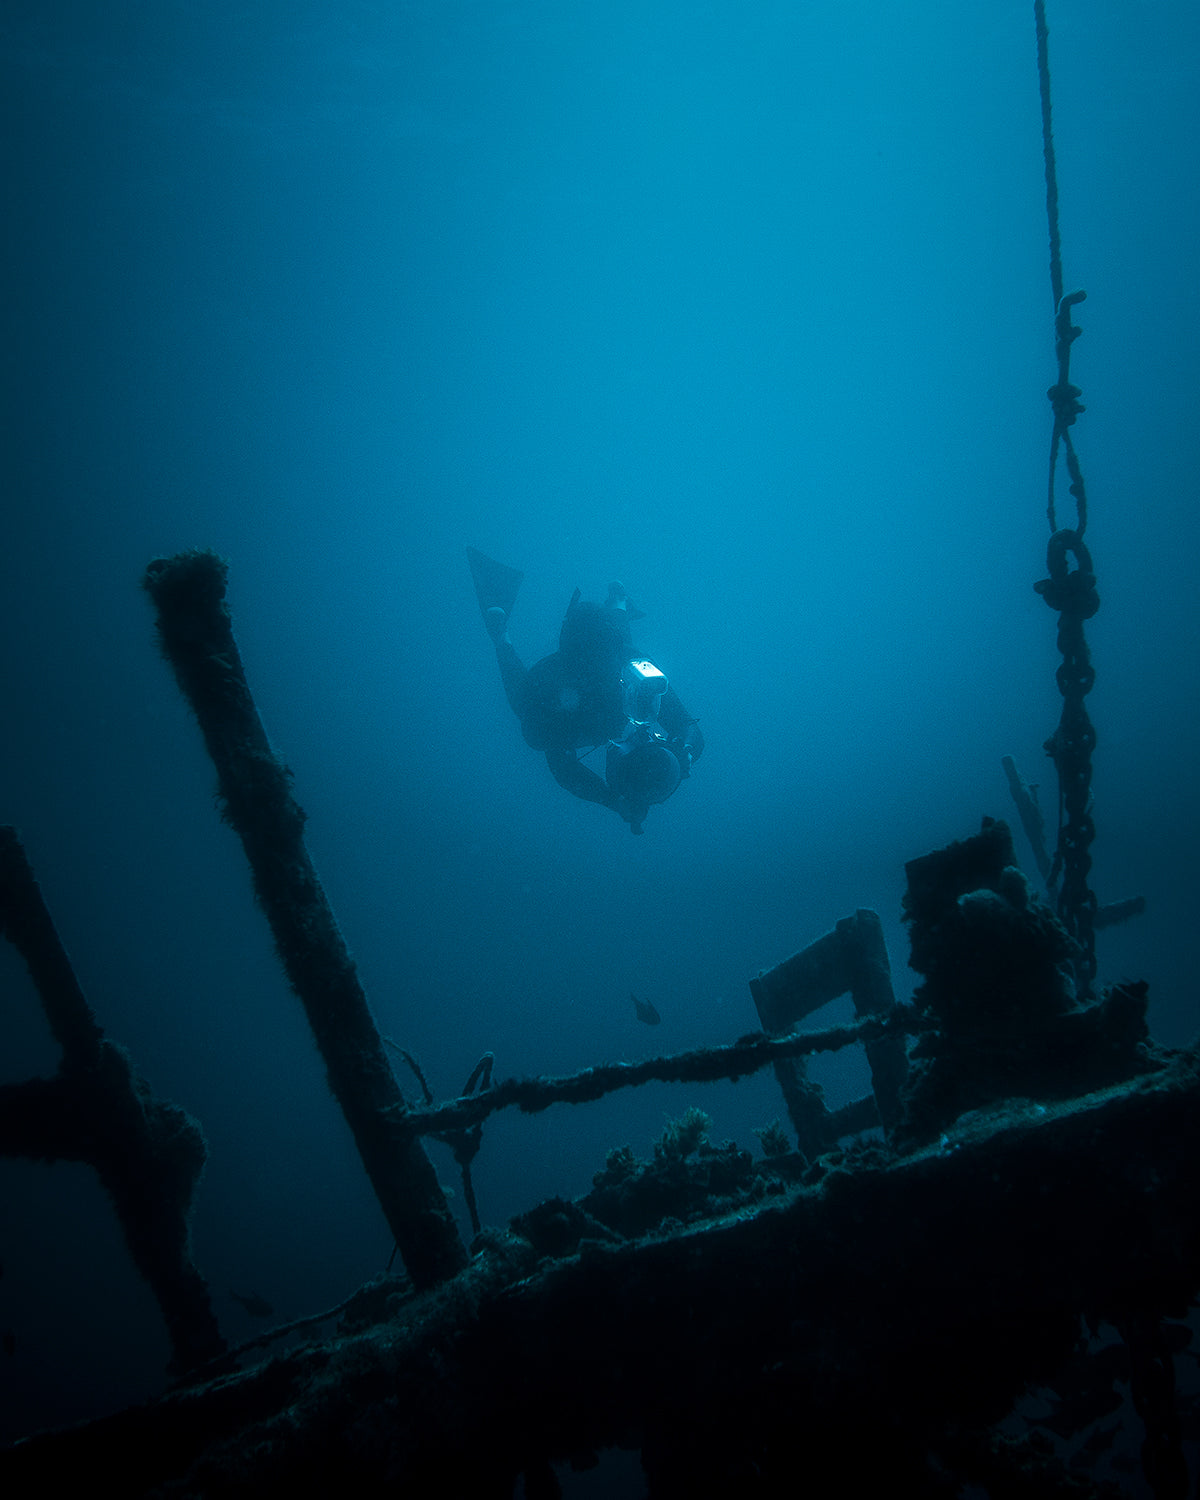 Thurston Photo Diving the HMAS ship wreck with Aquatech and One Ocean International